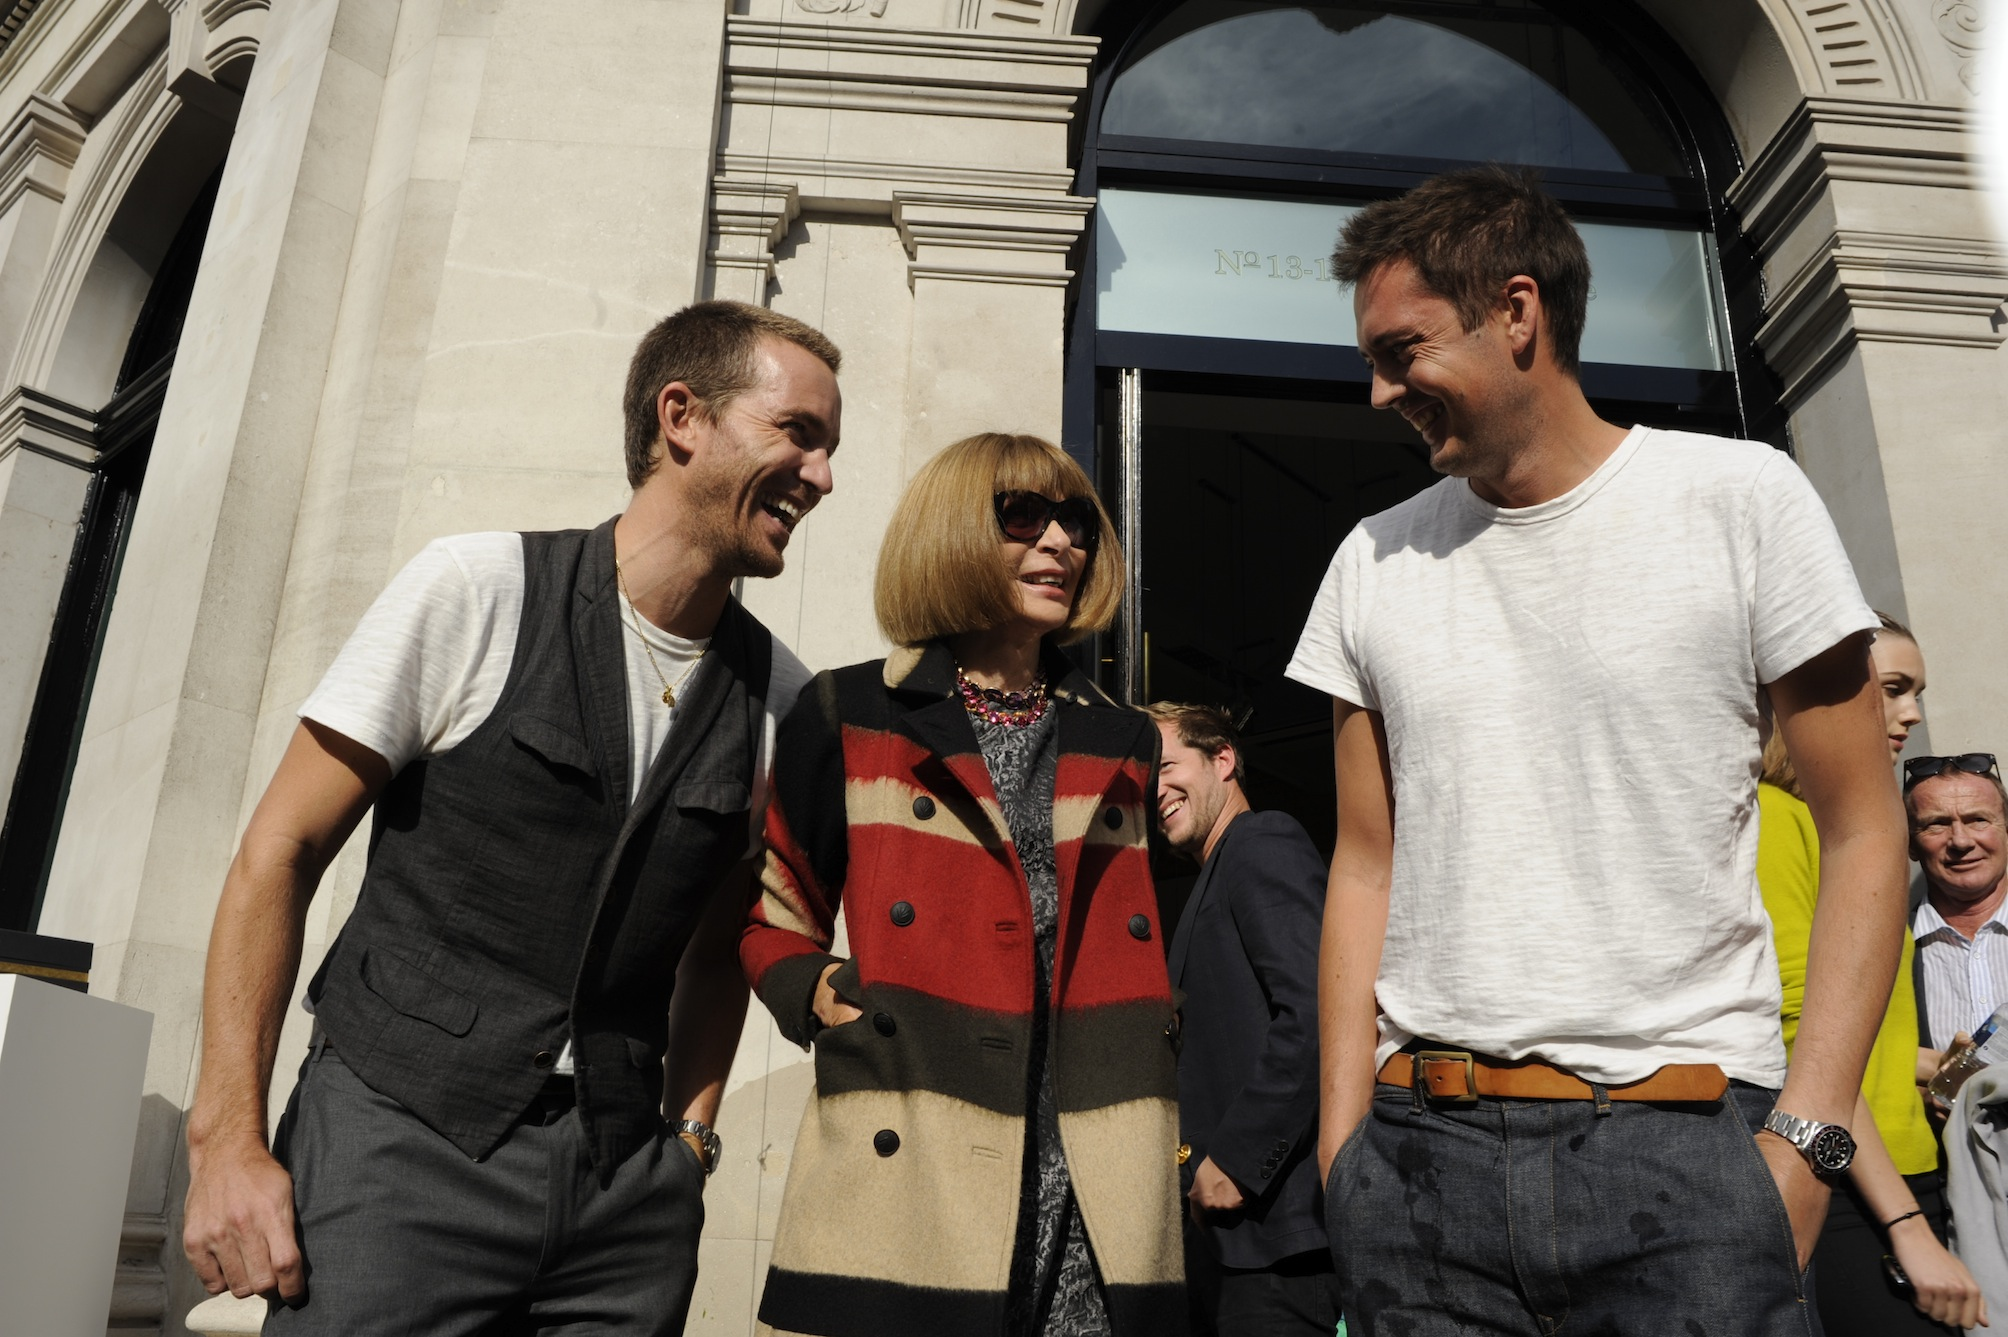 Anna-Wintour-Opens-Rag-Bone-London-Store-David-Neville-and-Marcus-Wainwright-moepilot-blog